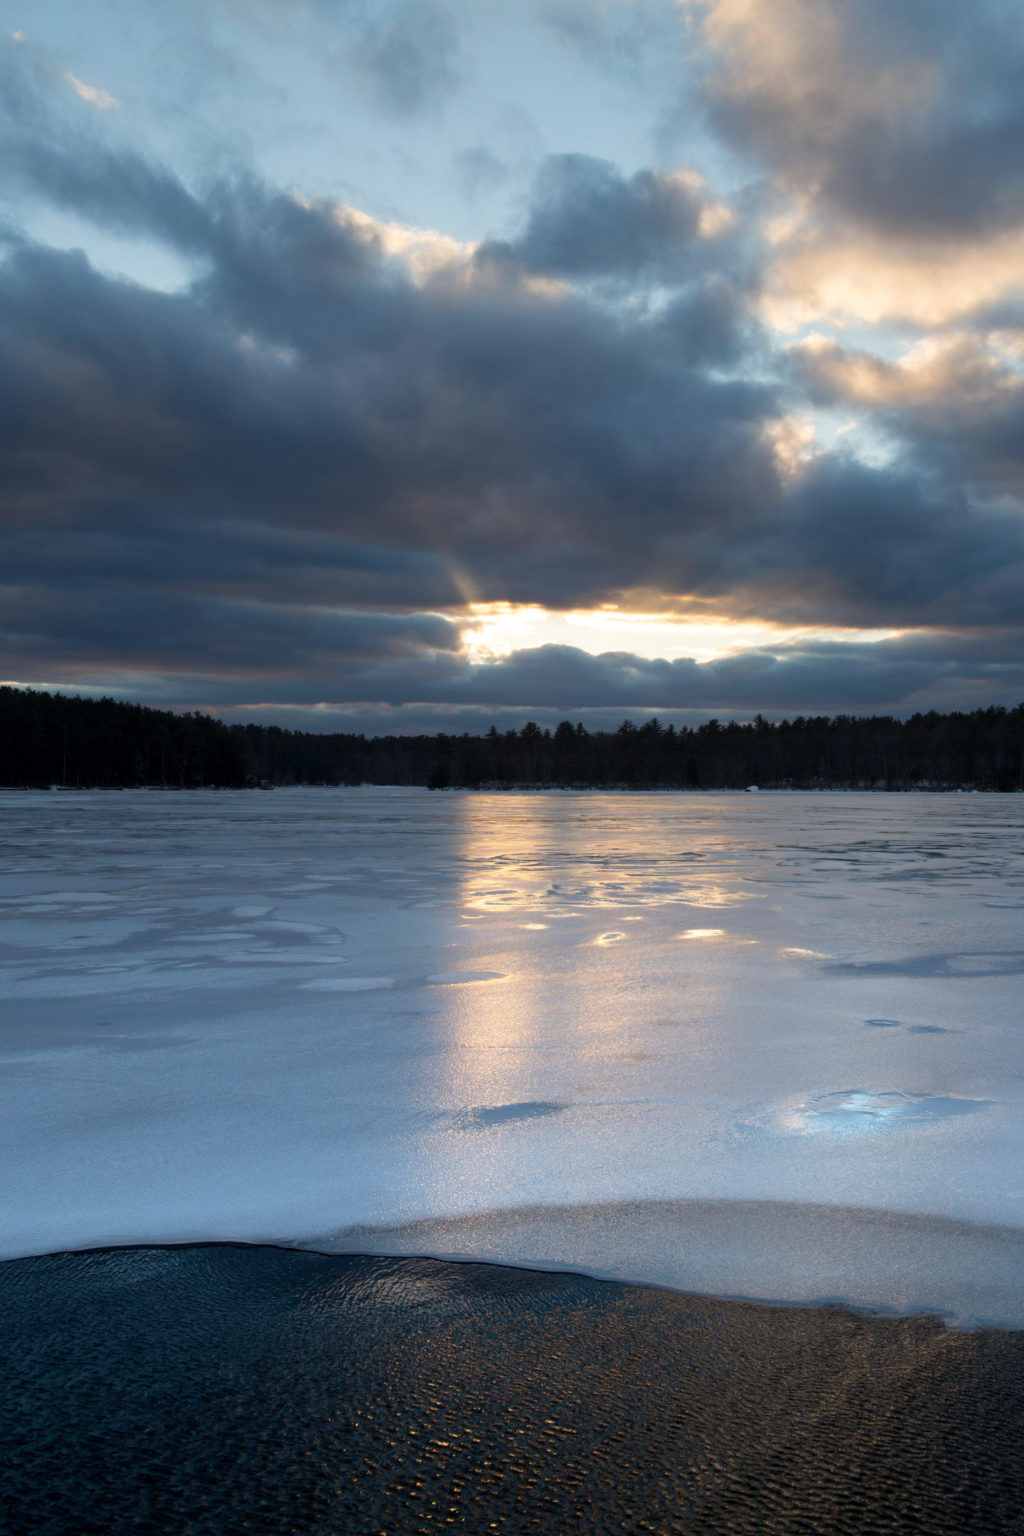 Sunlight Reflected on Icy Lake